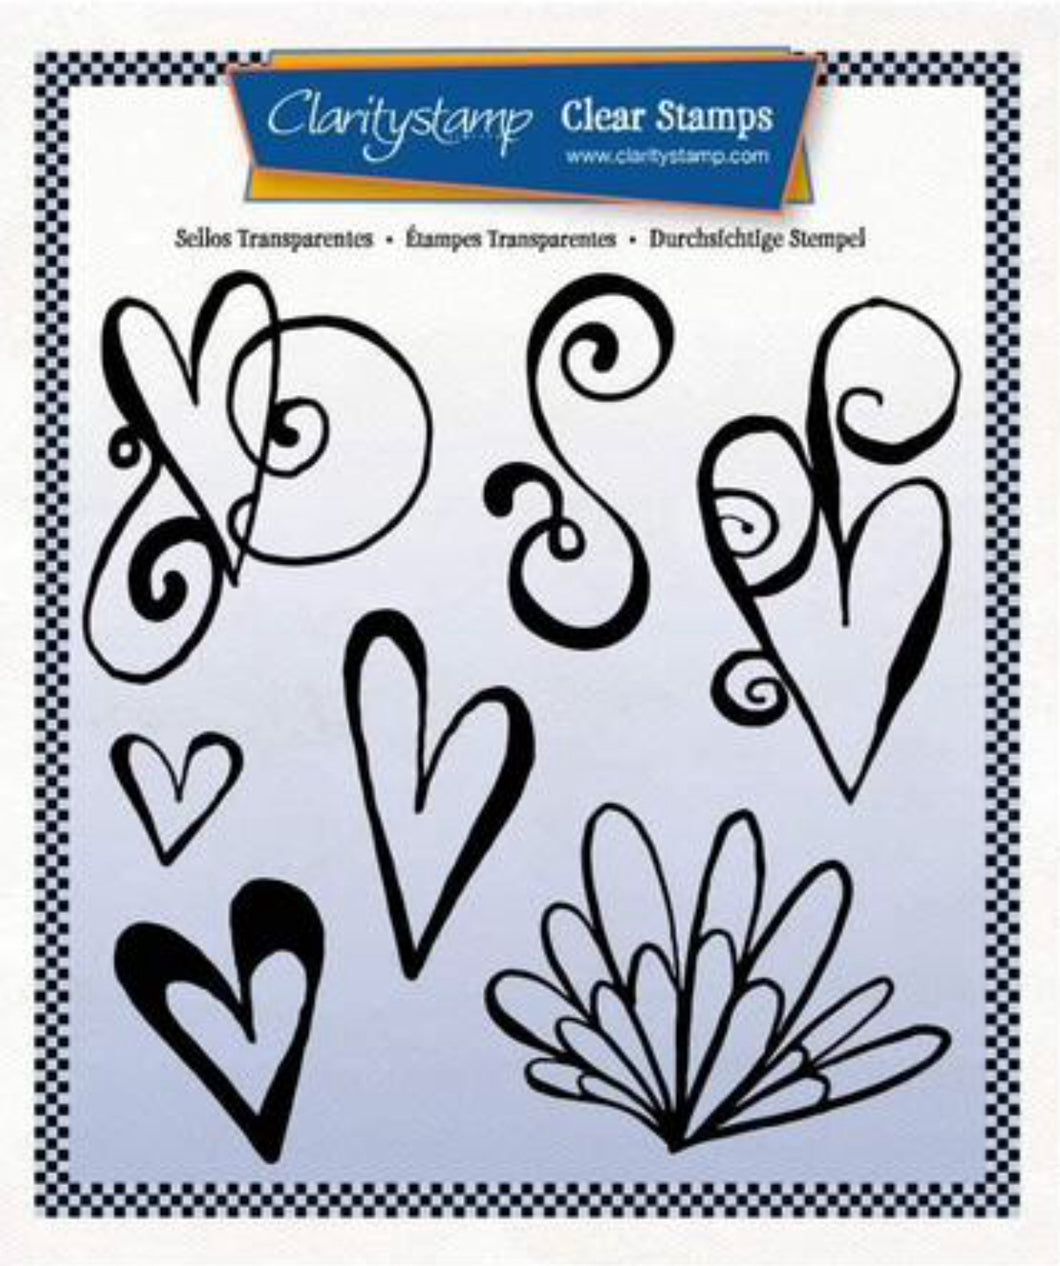 Clarity Stamps Leonie's Altered Hearts Unmounted Clear Stamp Set Designed by Leonie Pujol